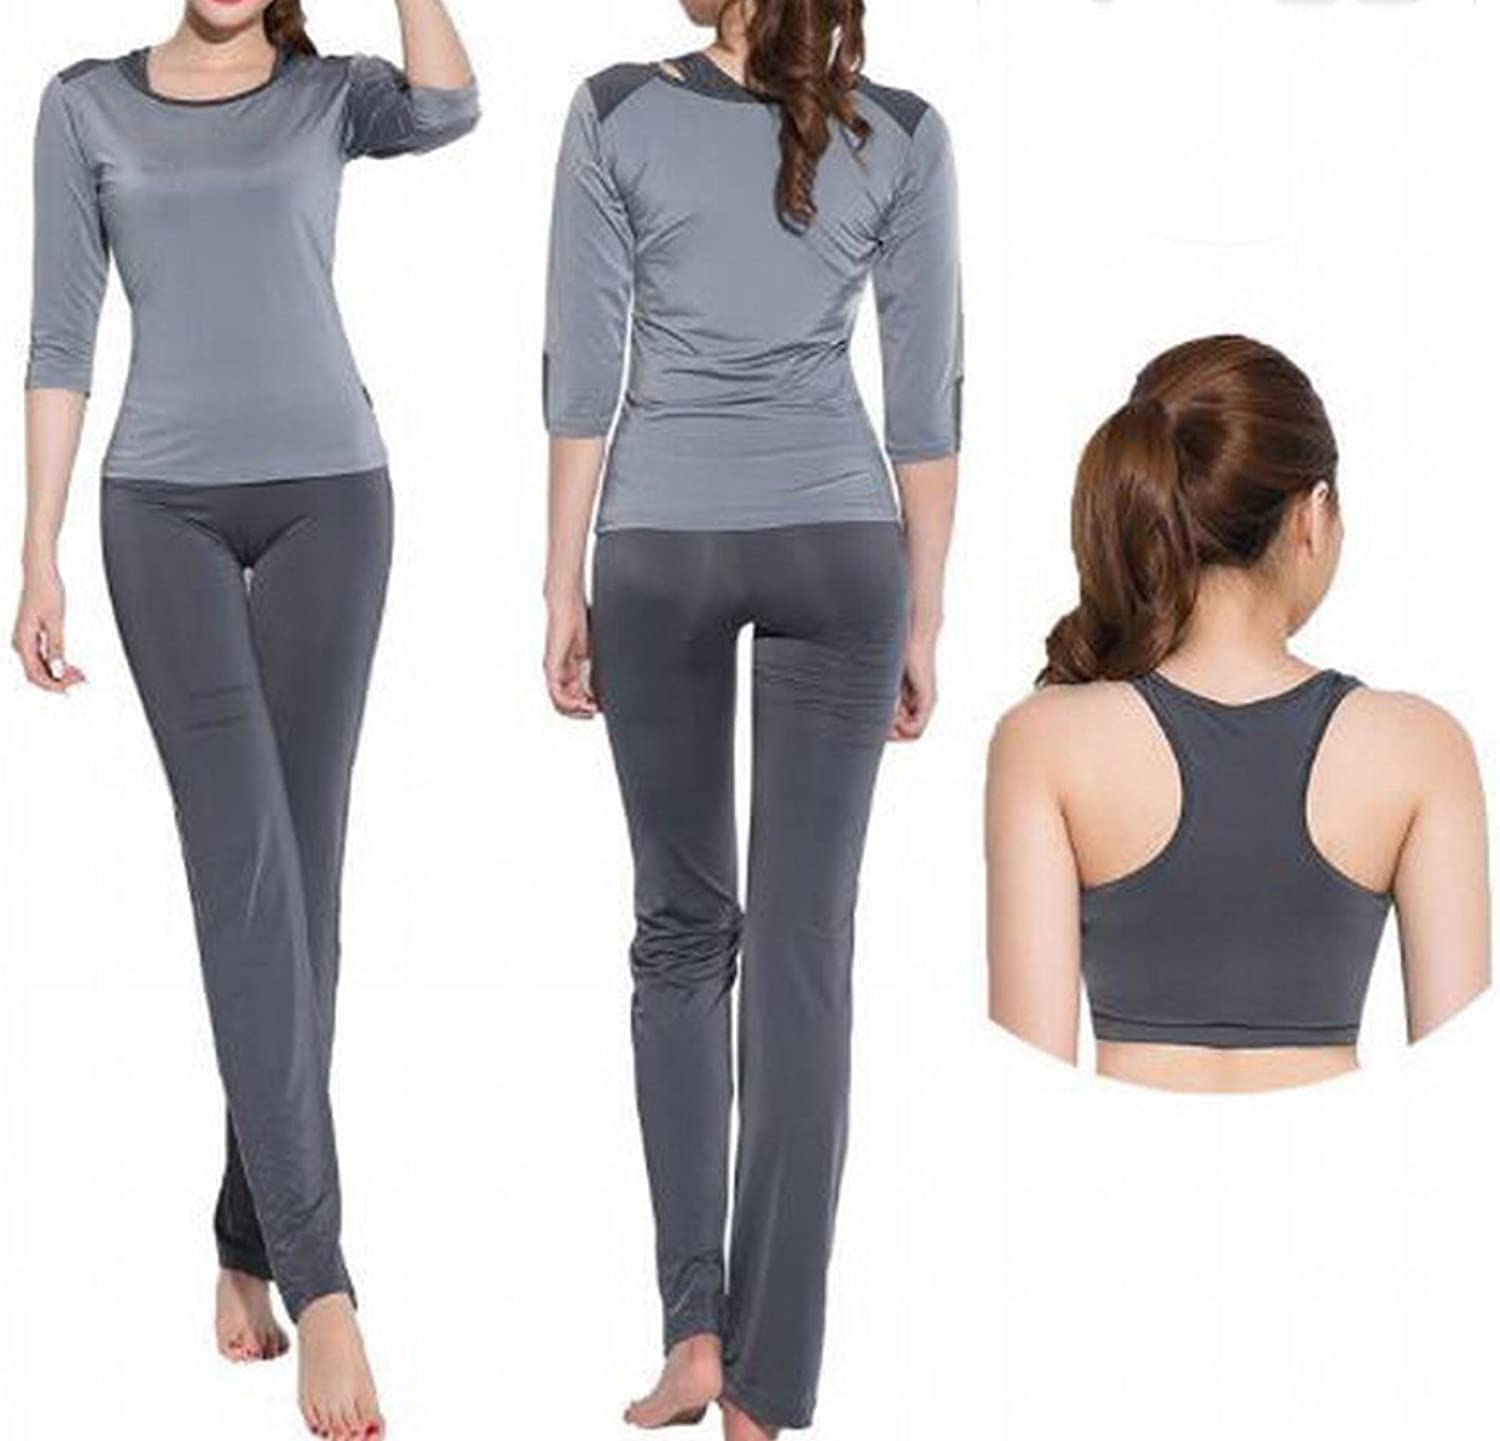 Yoga Clothing Sports Suit Female SevenPoint Sleeve ThreePiece Running Speed Dry Sweat Breathable Fitness Clothing CWJ